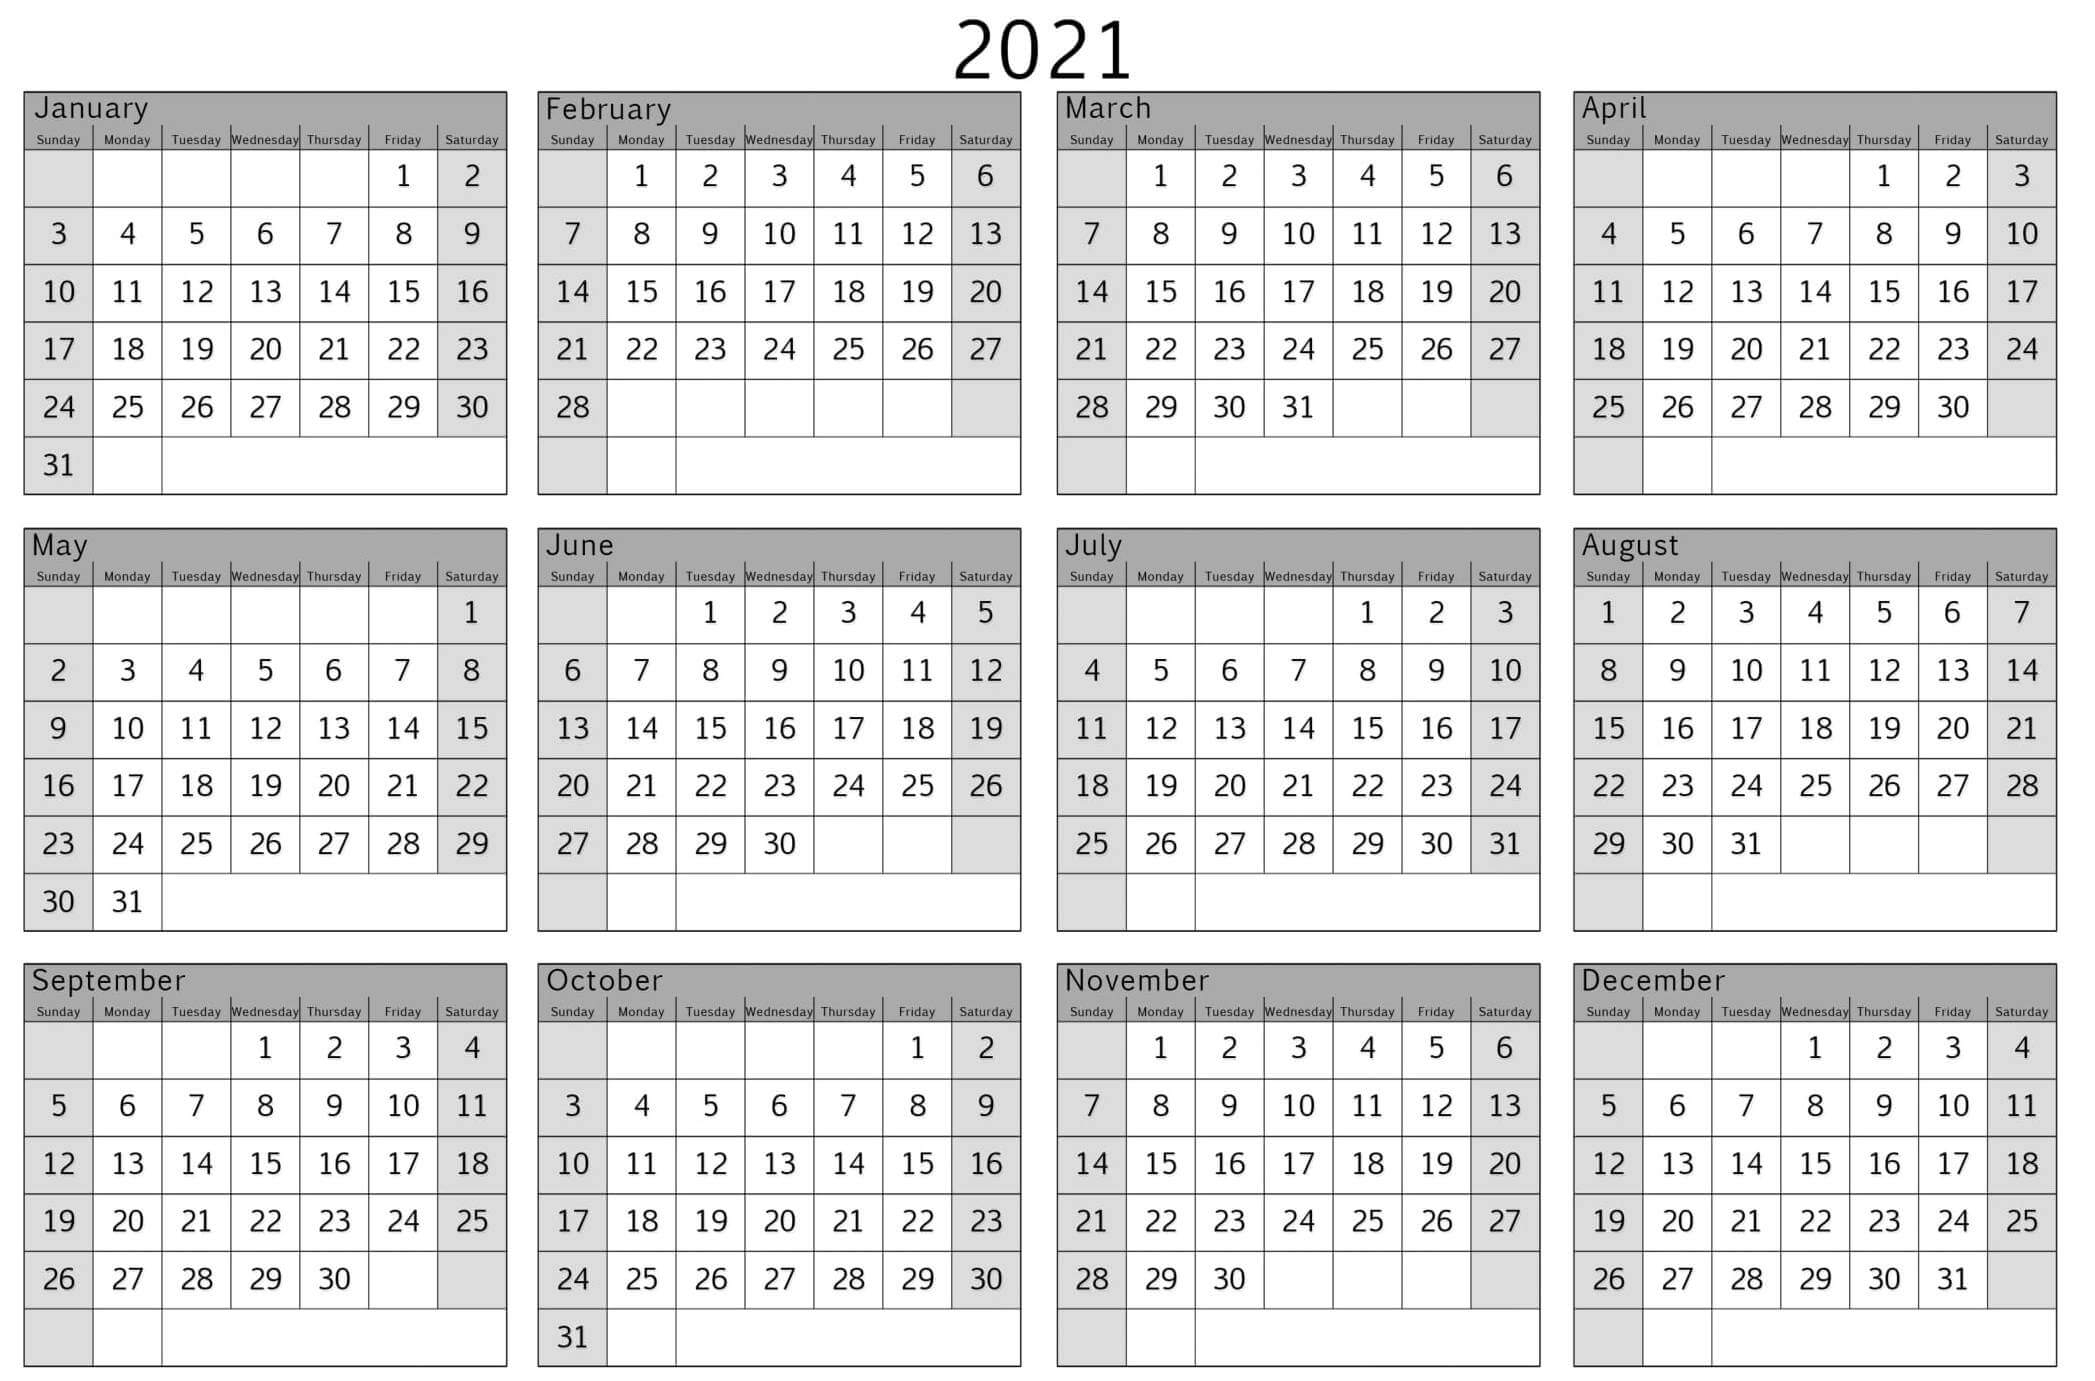 Yearly Calendar With Notes 2021 Editable Template - Set Your